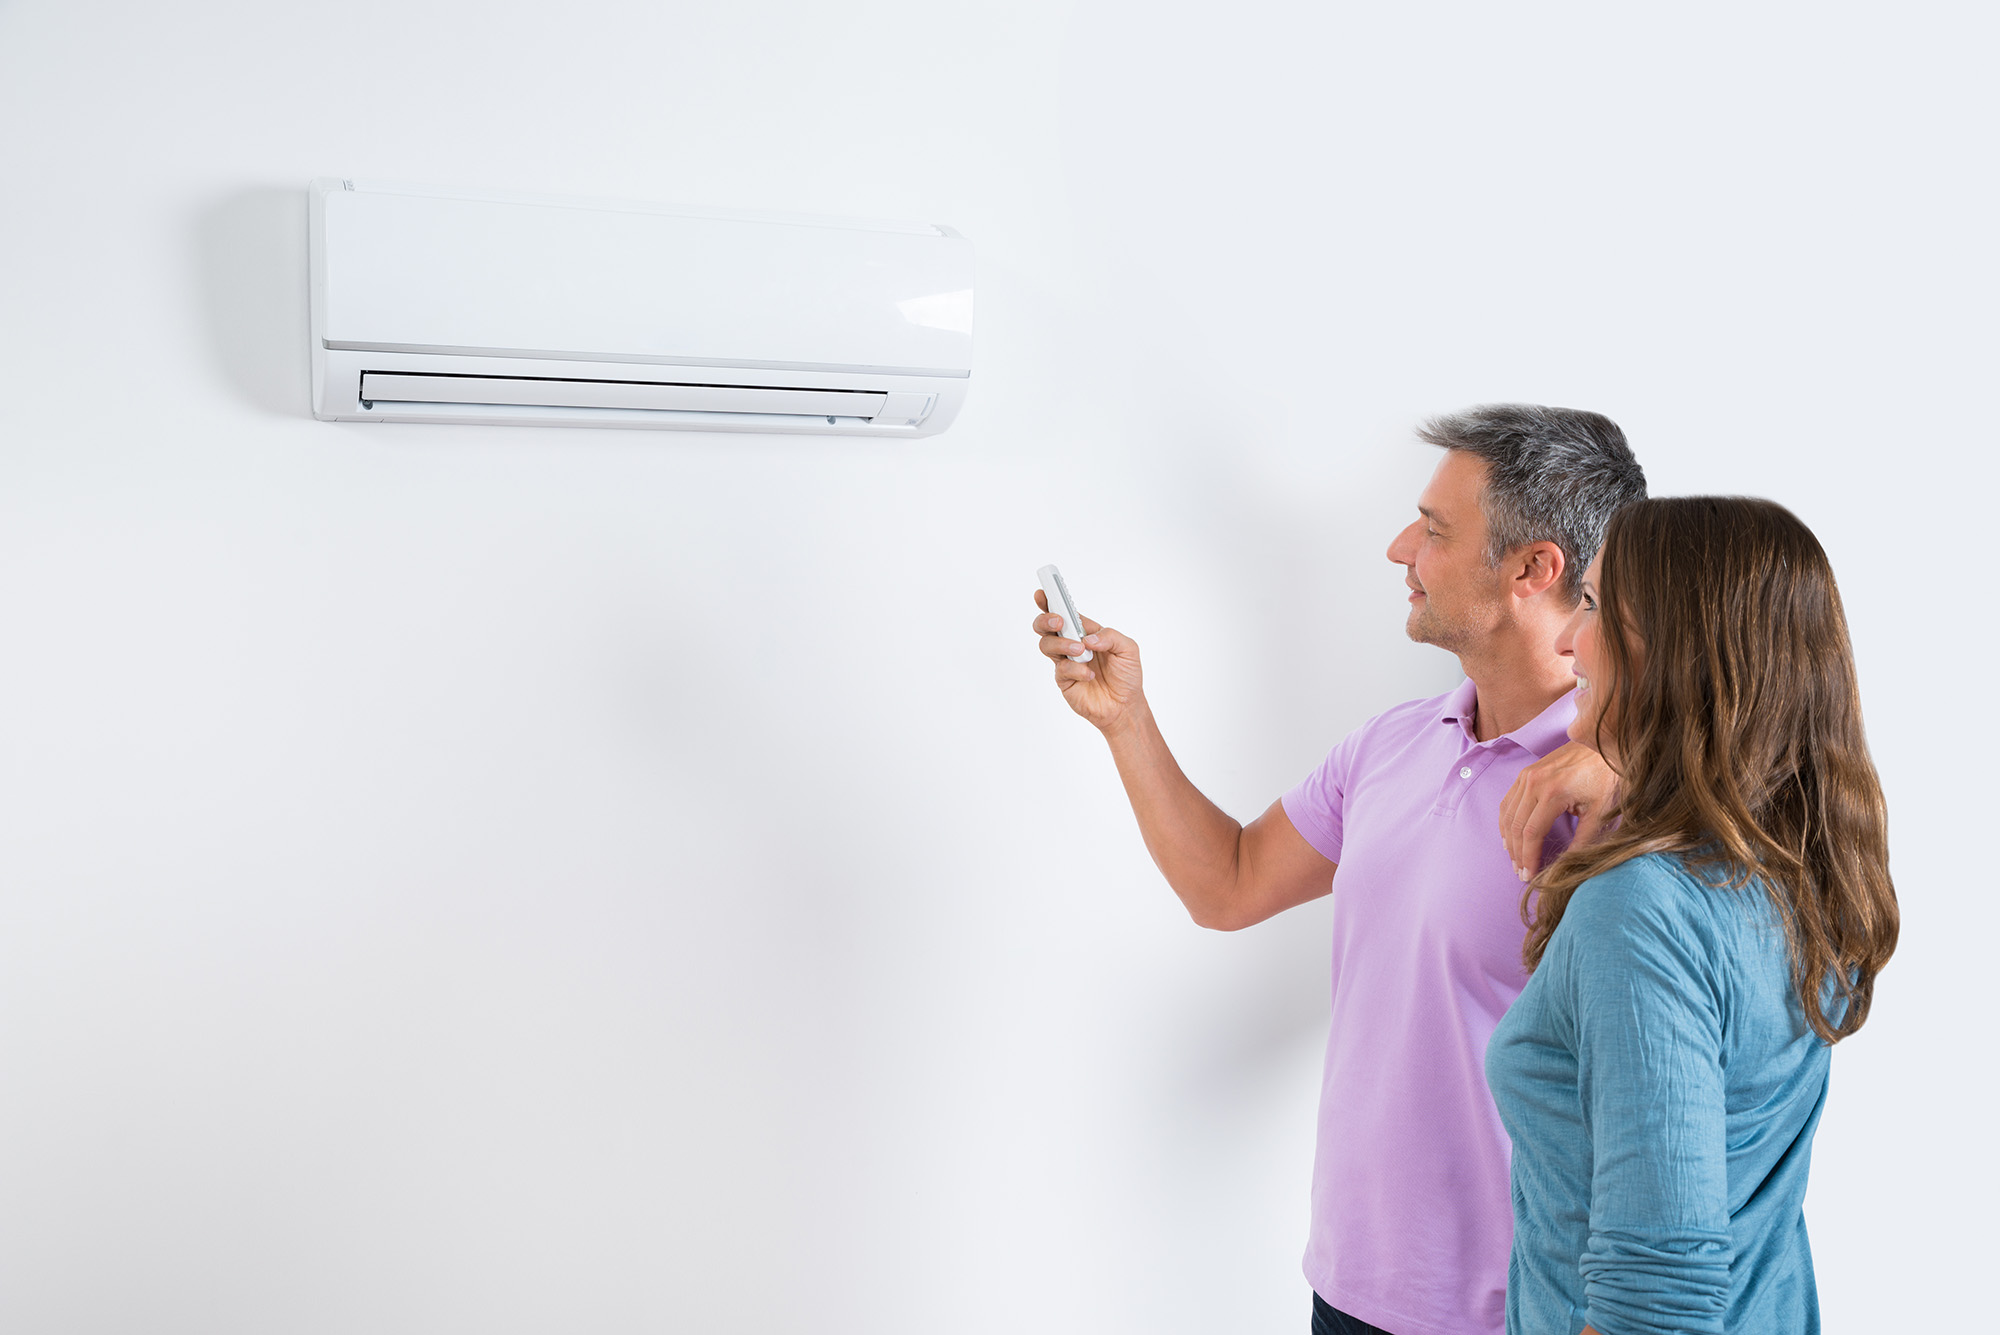 Mature Couple Standing In Front Of Air Conditioner And Adjusting The Temperature By Remote